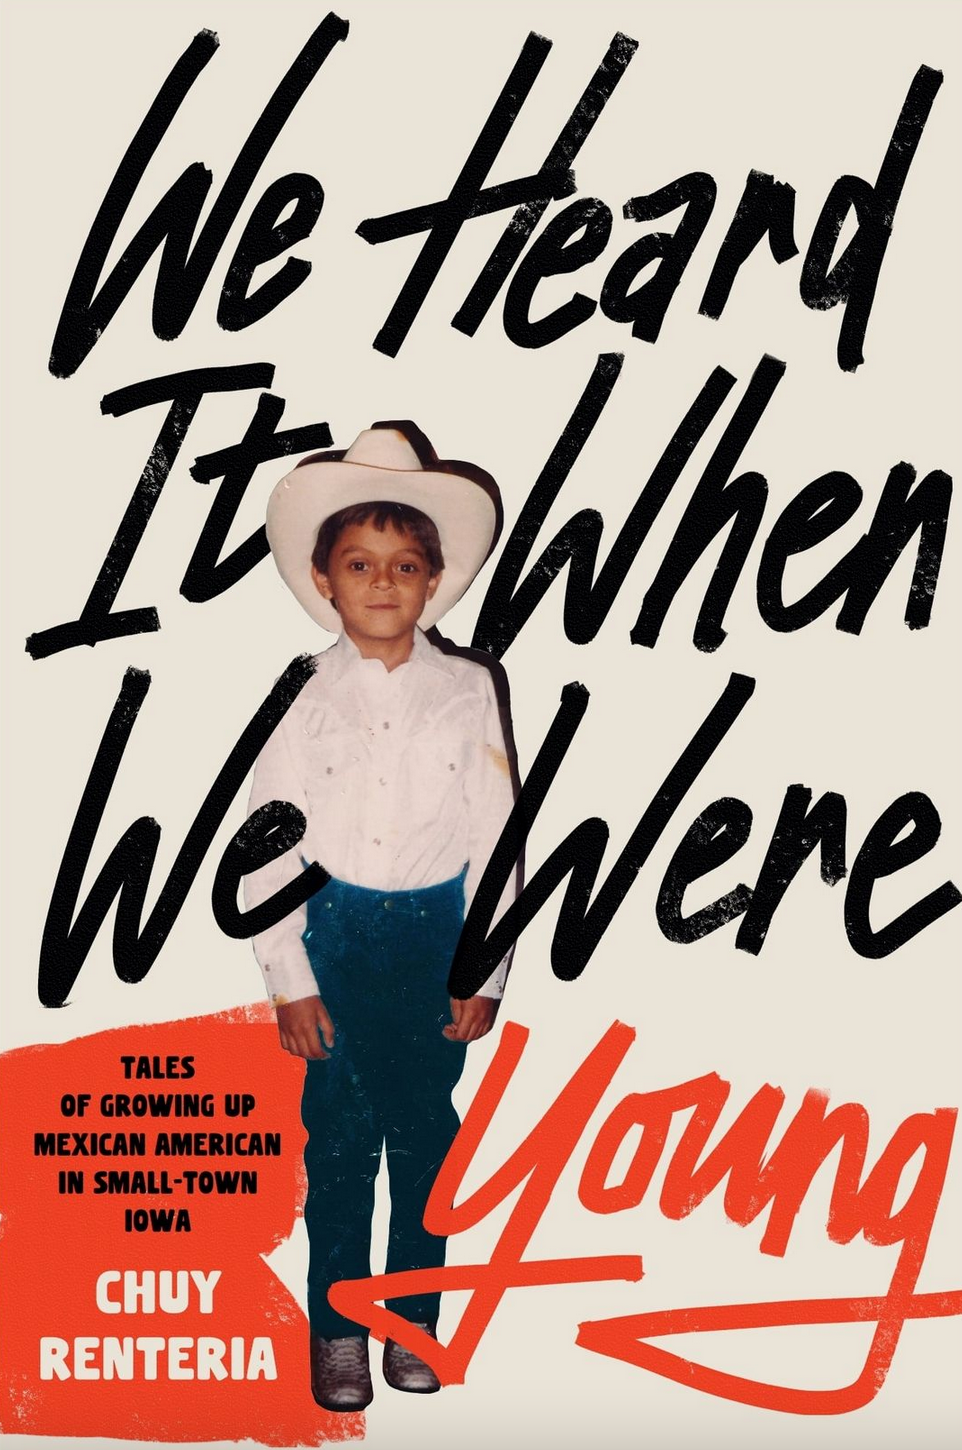 Cover design for Chuy Renteria's book We Heard It When We Were Young in script with a photograph of the author as a child